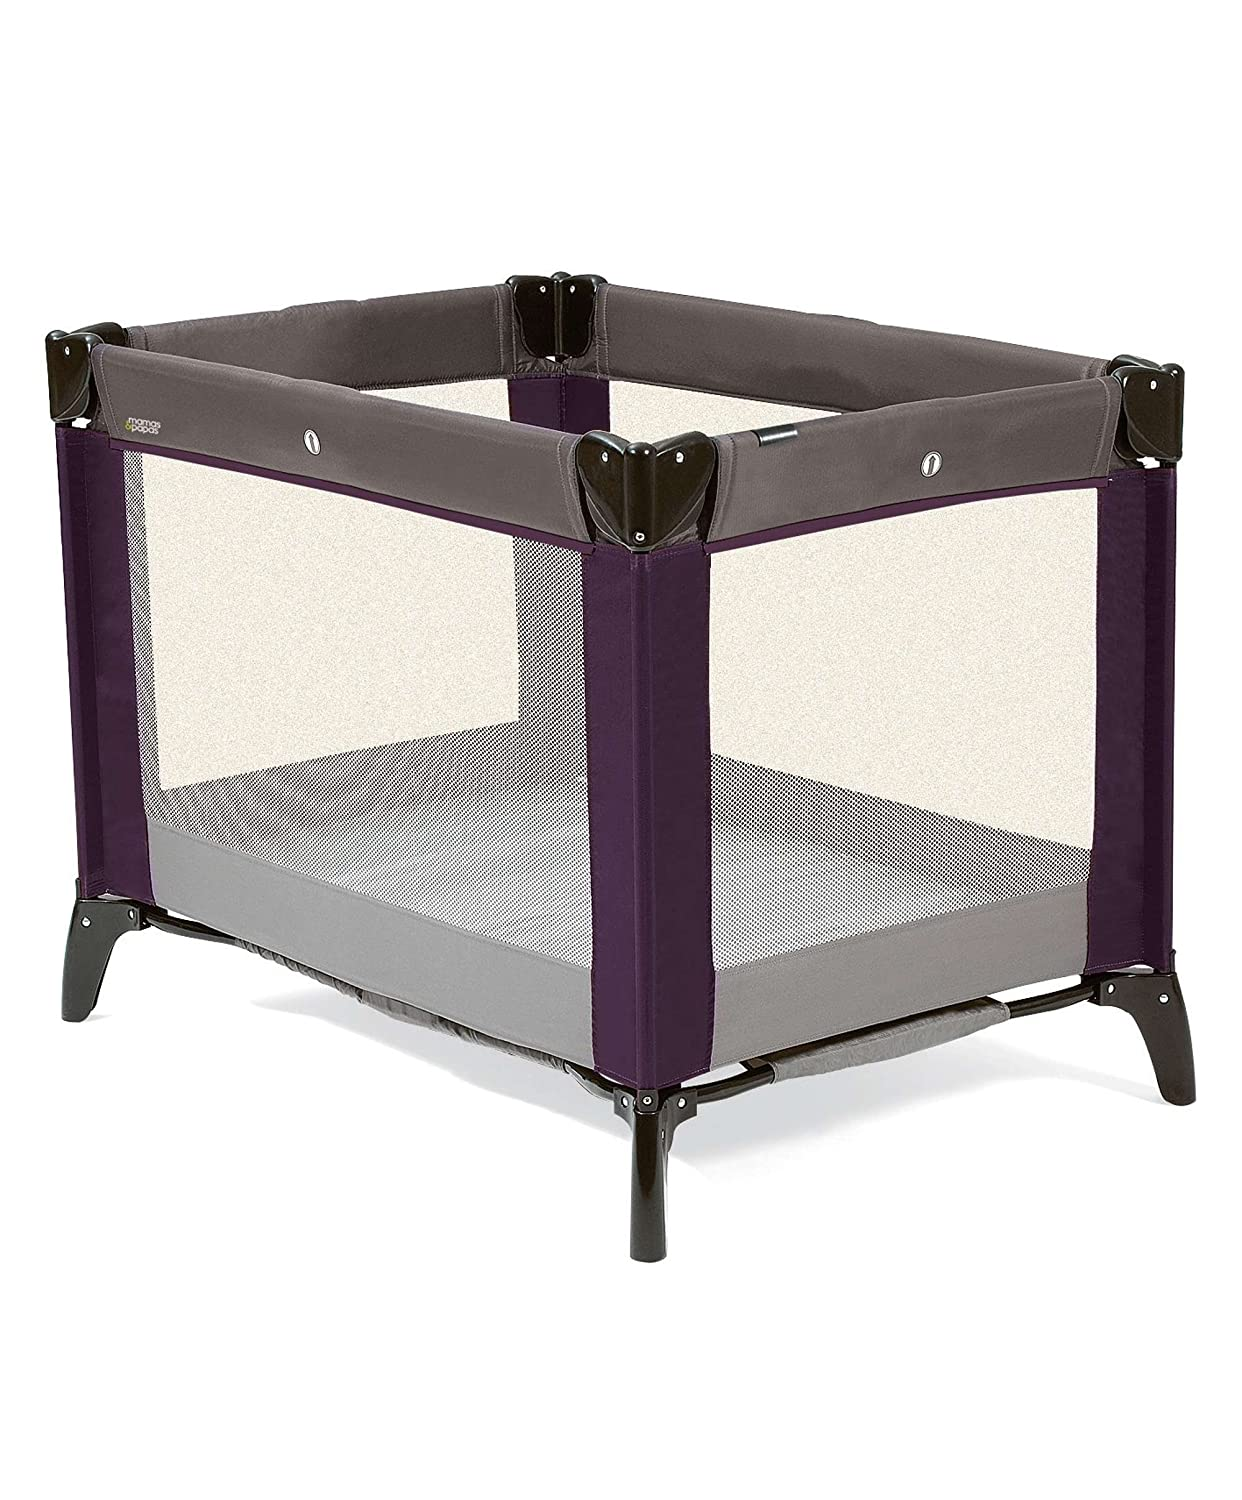 Mamas & Papas Classic Travel Cot and Play Pen, Plum/Grey 4272N0800